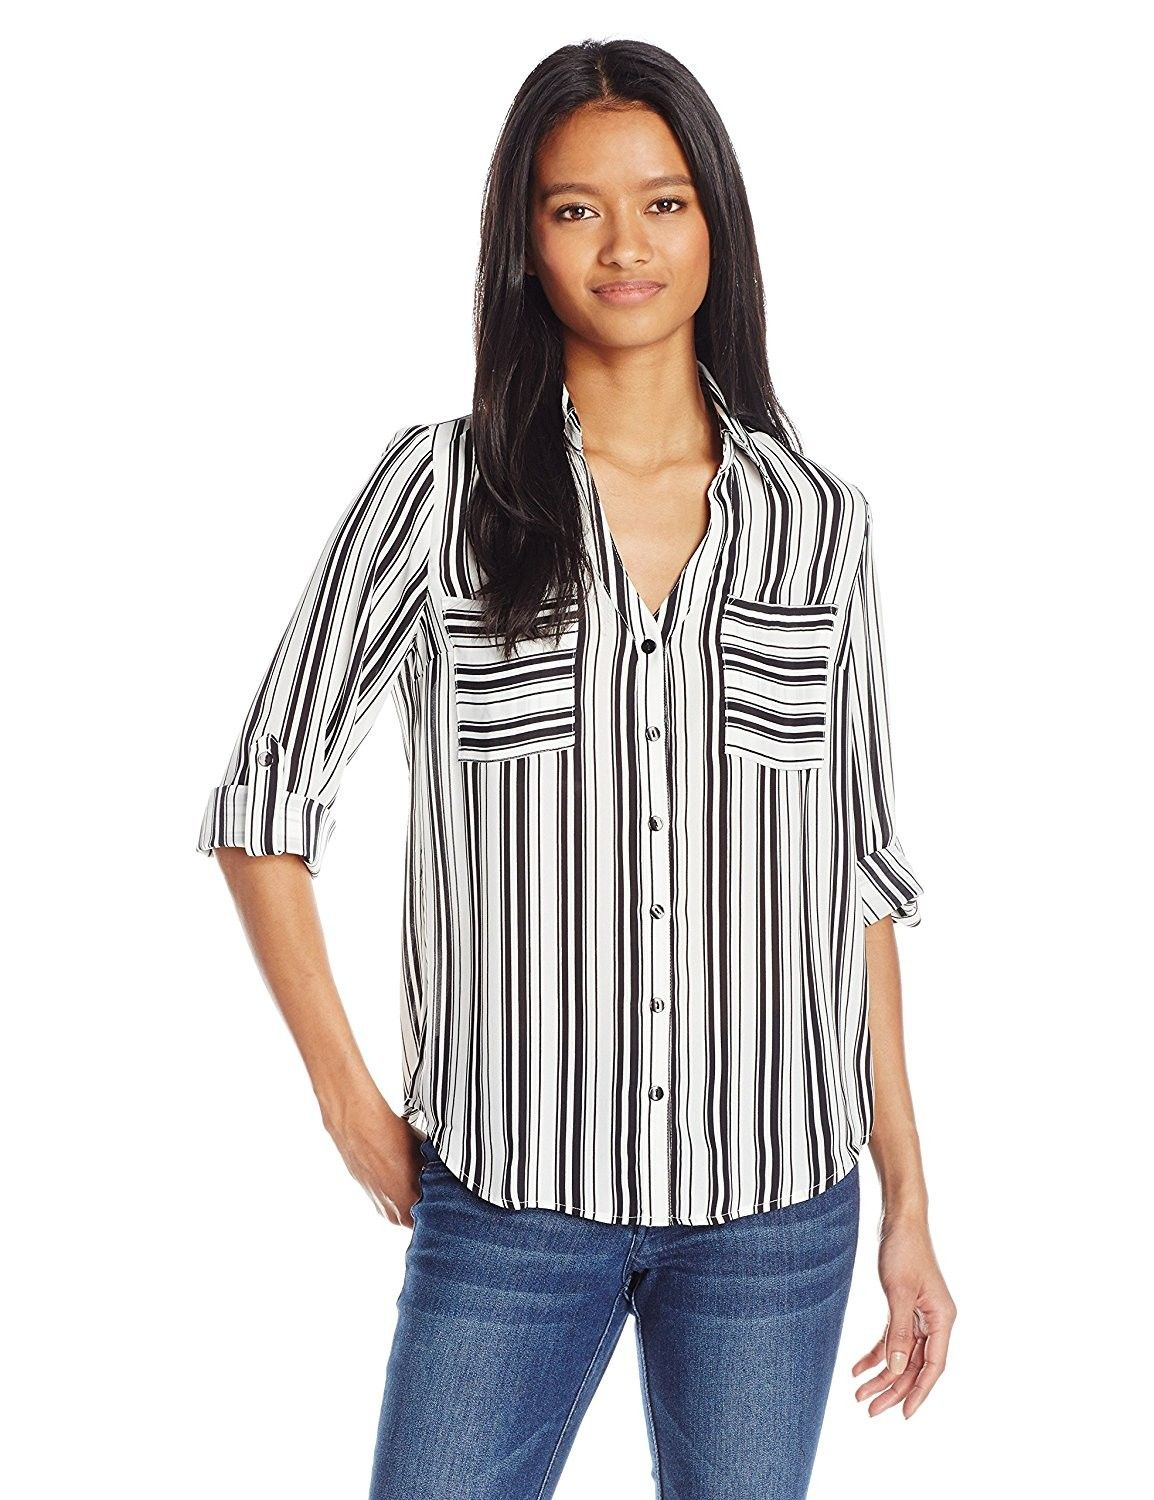 Juniors Byer Womens Button Down Top with Roll-Tab Sleeves A